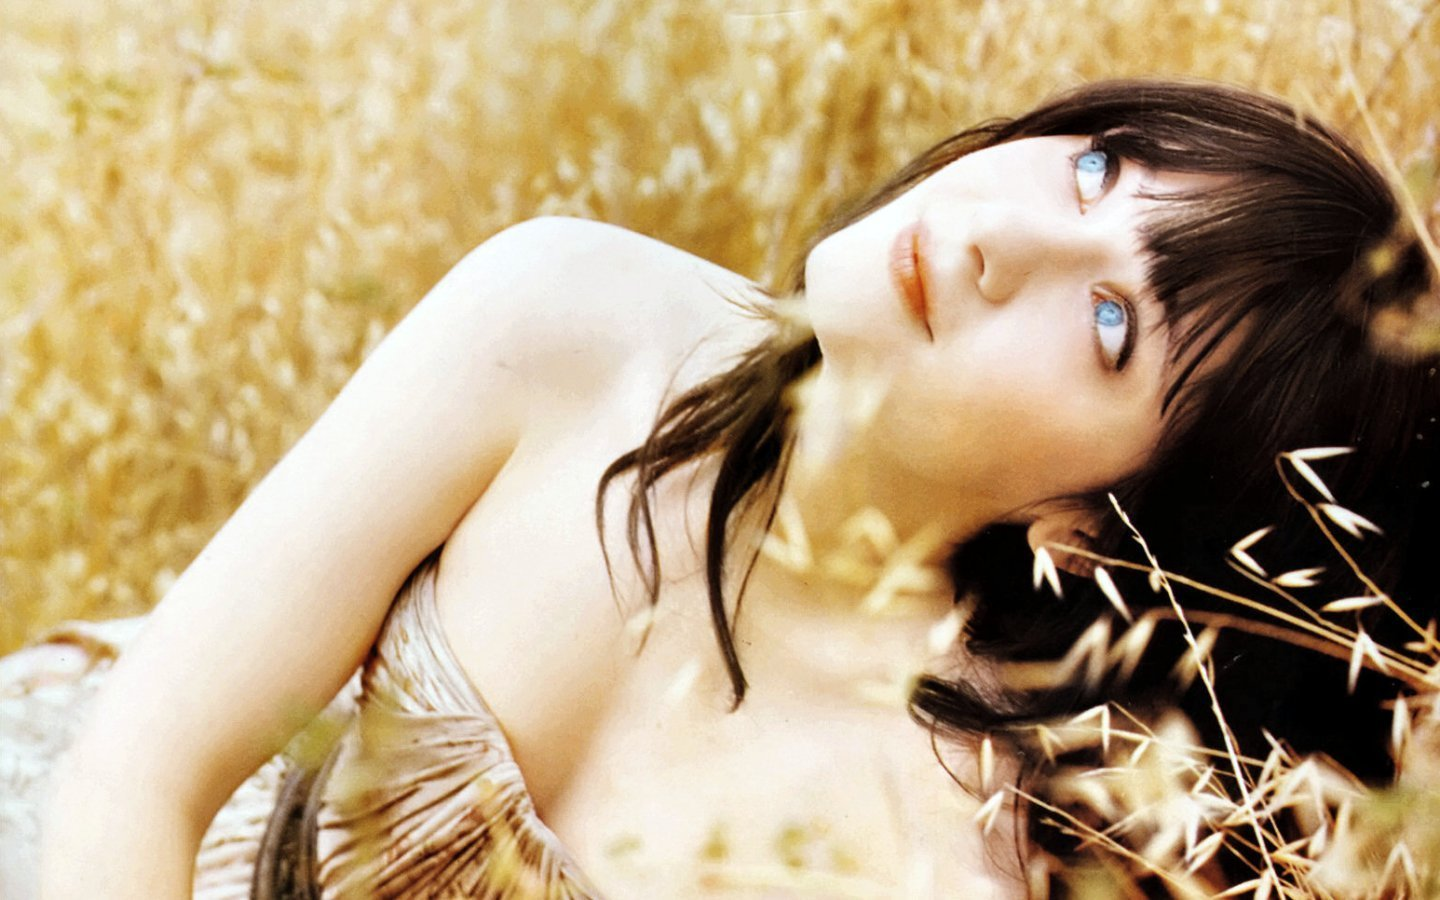 Zooey-Deschanel-Widescreen-Wallpaper-zoo